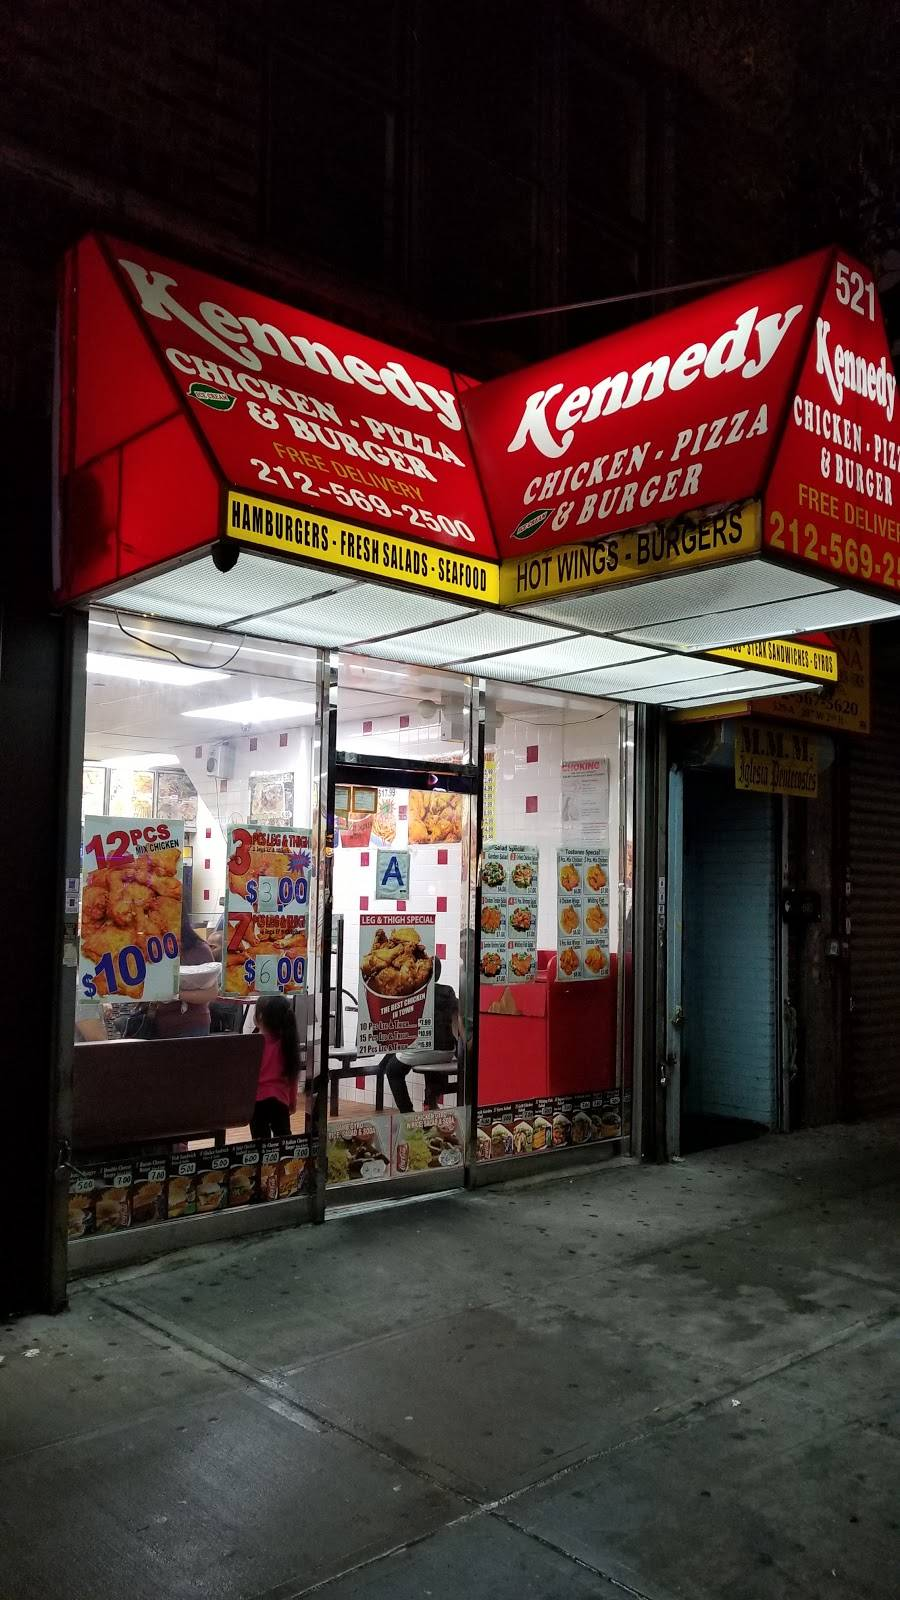 Kennedys Chicken & Biscuit   restaurant   521 W 207th St, New York, NY 10034, USA   2125692500 OR +1 212-569-2500